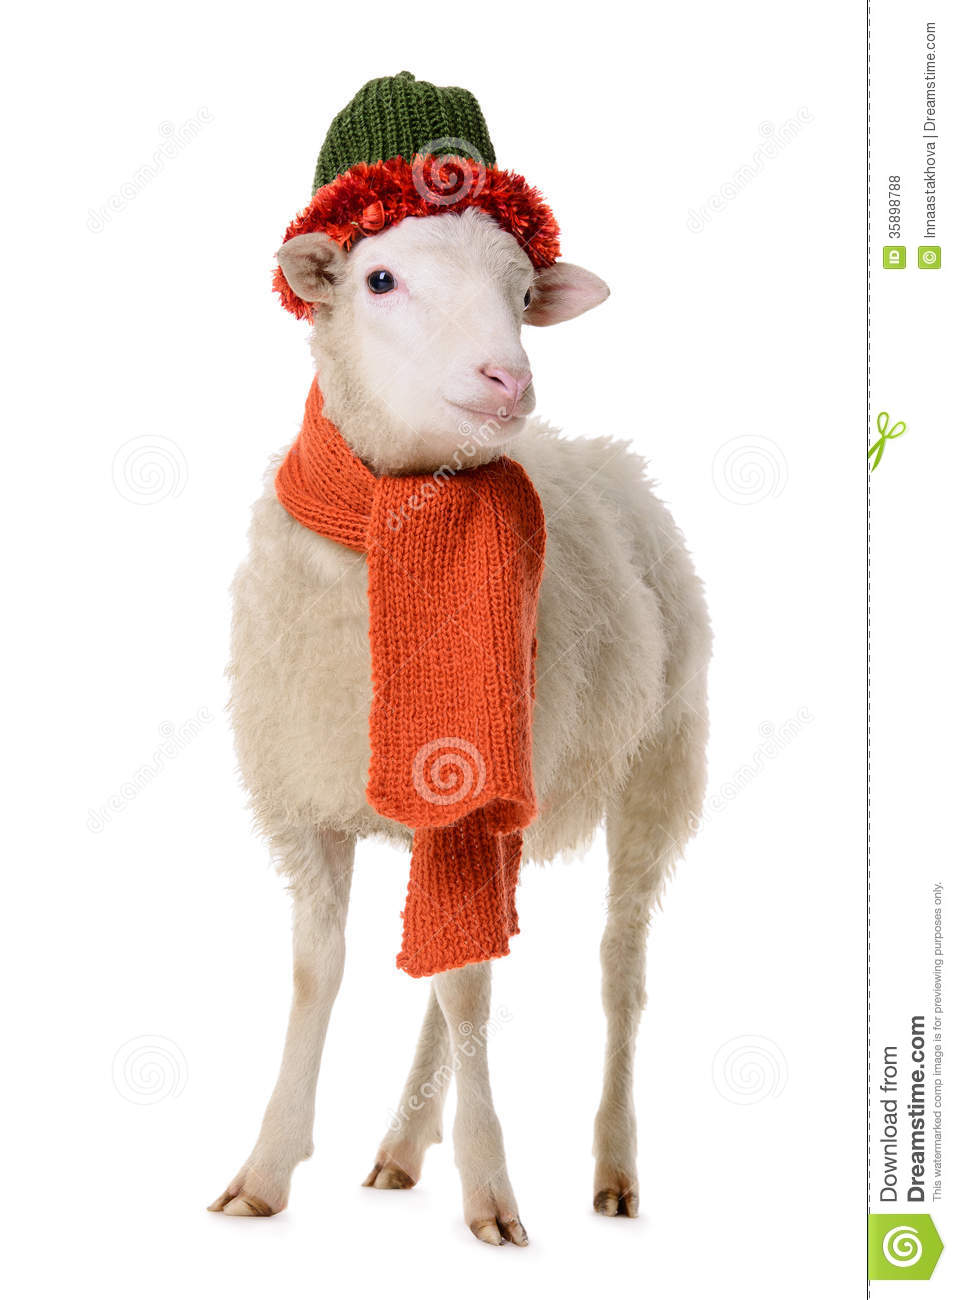 Sheep In Clothes Royalty Free Stock Photos Image 35898788